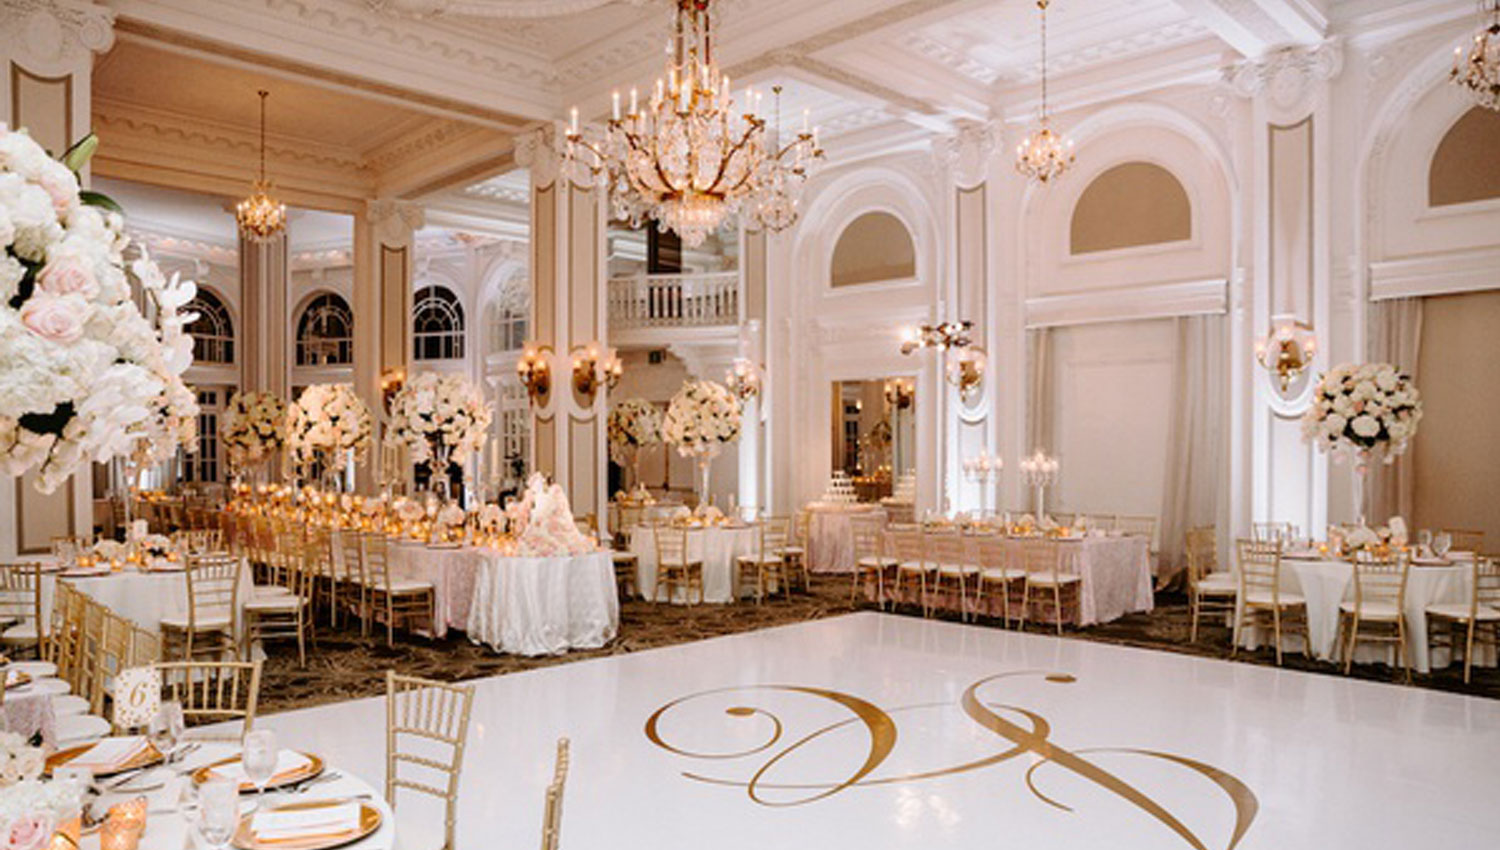 wedding decorator in Surrey, event decorator in Surrey, Wedding Rental in surrey, Wedding Decorator in Vancouver, Event Decorator in Vancouver, Wedding rentals in Vancouver, Wedding Decorator in Burnaby, Wedding Decorator in Abbotsford, Wedding decorator in Langley, Wedding Decorator in Richmond, Wedding Decorator in North Vancouver,Wedding Decorator in Whistler